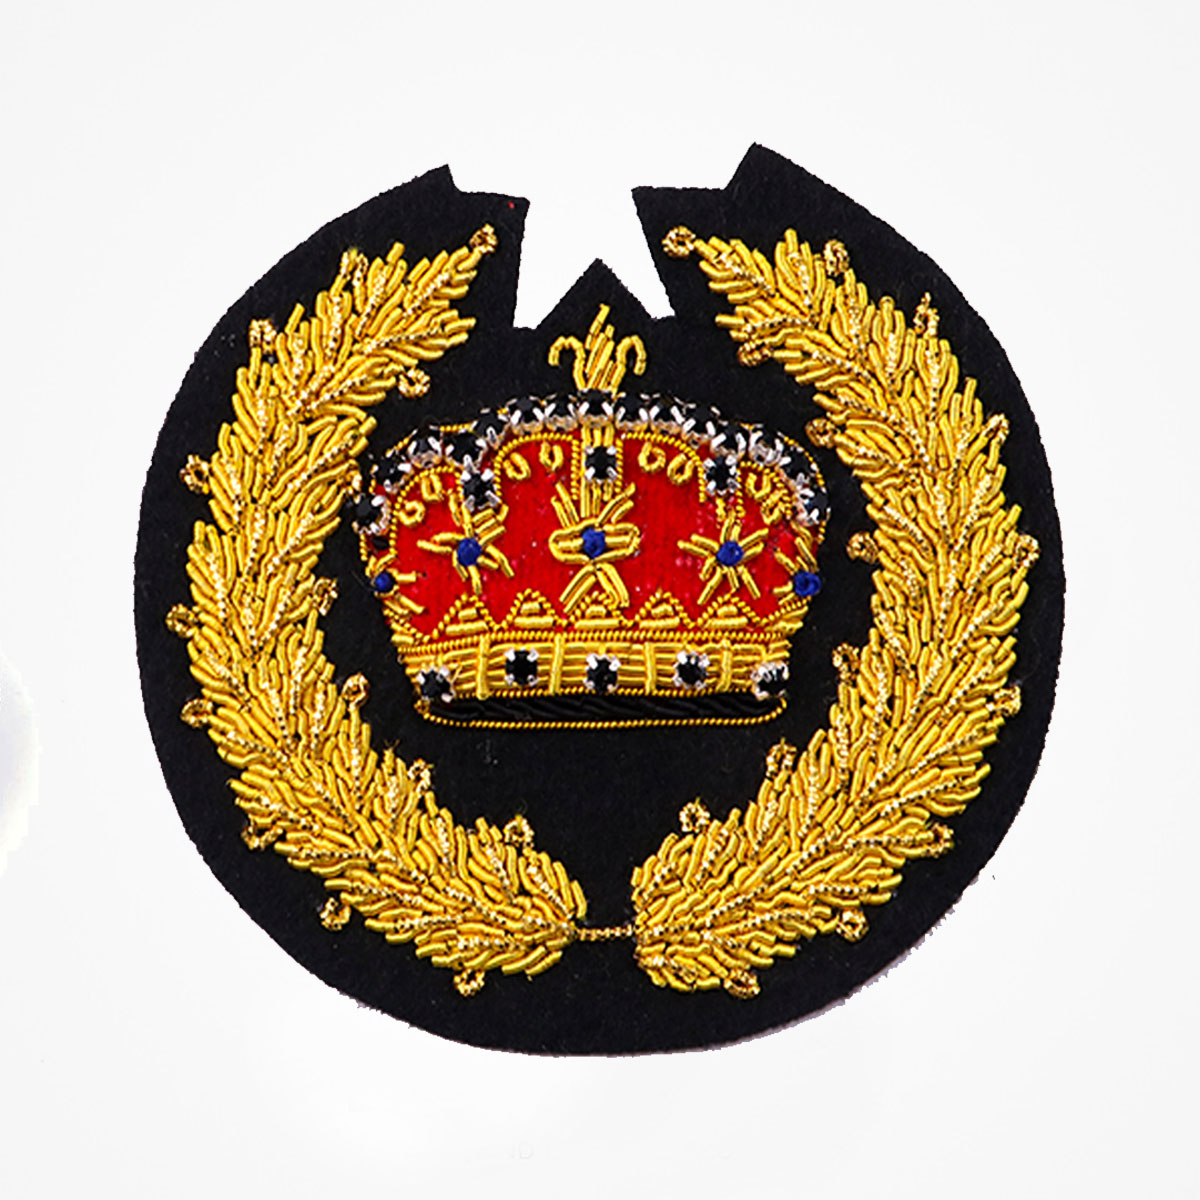 Hand Embroidered Crown And Leaf Blazer Badges Crest - Fashionable 3D embroidered look Made by skilled artisans Bullion wire and silk thread hand Stitched on Black color Felt Available in gold and silver colors Size = 3.5 inches sew-on backing: Perfect for caps, sports jacket, leather jackets, blazer coat, Blazer Pocket, shirts uniforms, Accessories and many More Pin backing: easy to removable 5